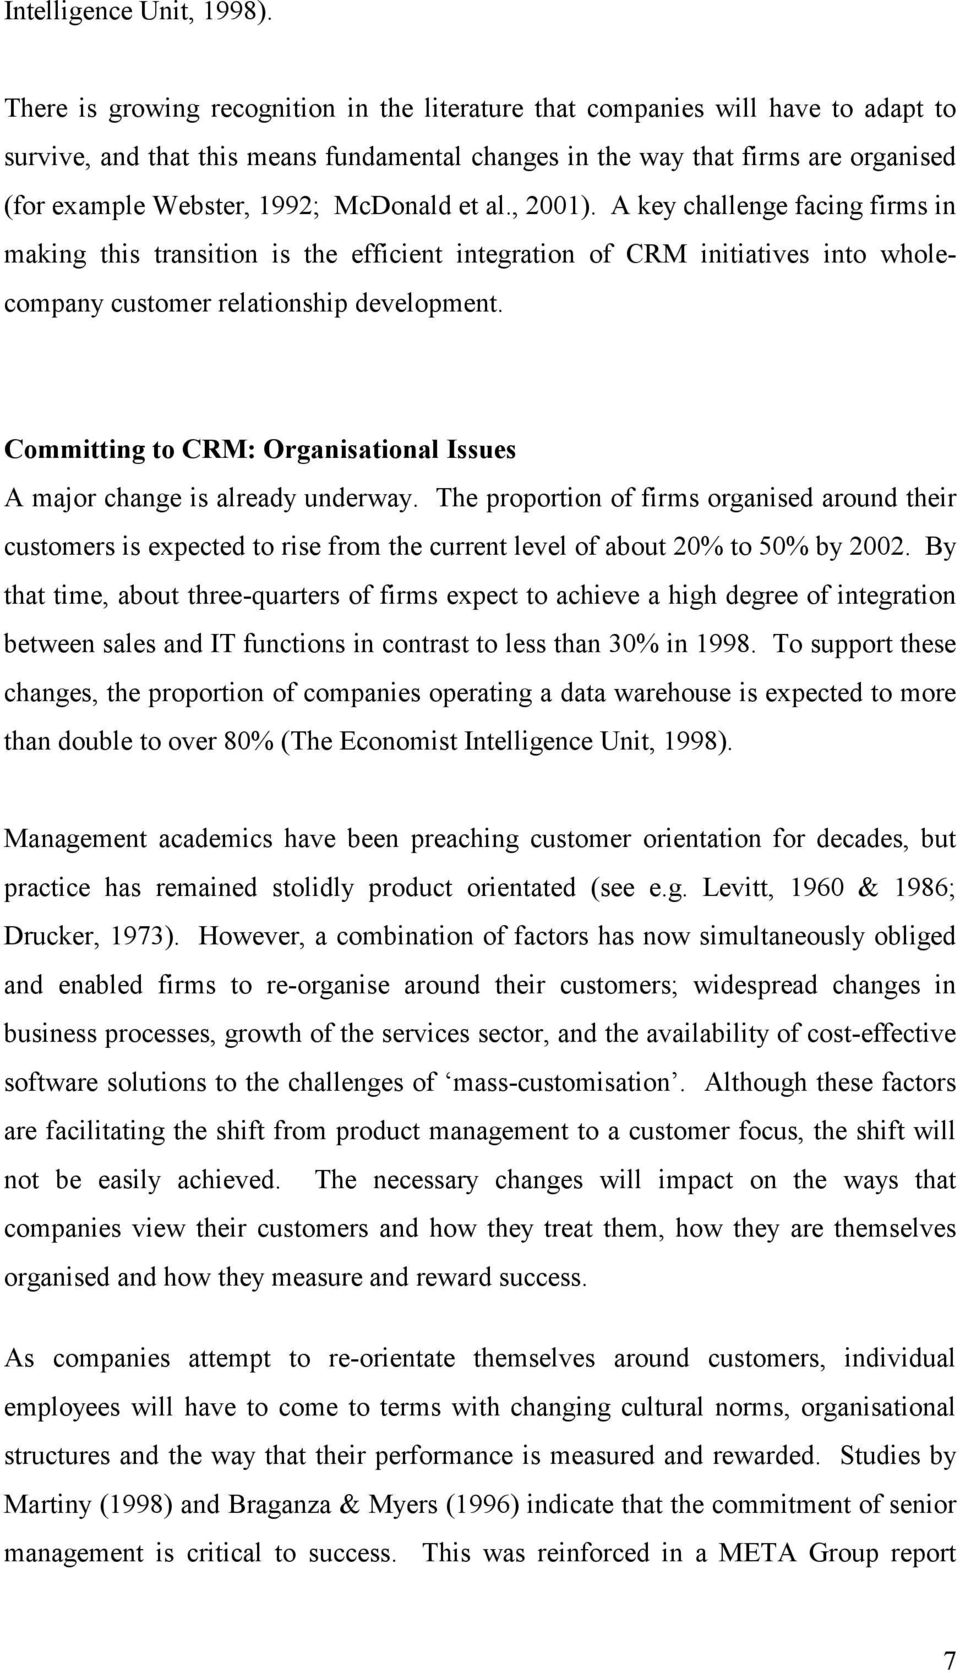 McDonald et al., 2001). A key challenge facing firms in making this transition is the efficient integration of CRM initiatives into wholecompany customer relationship development.